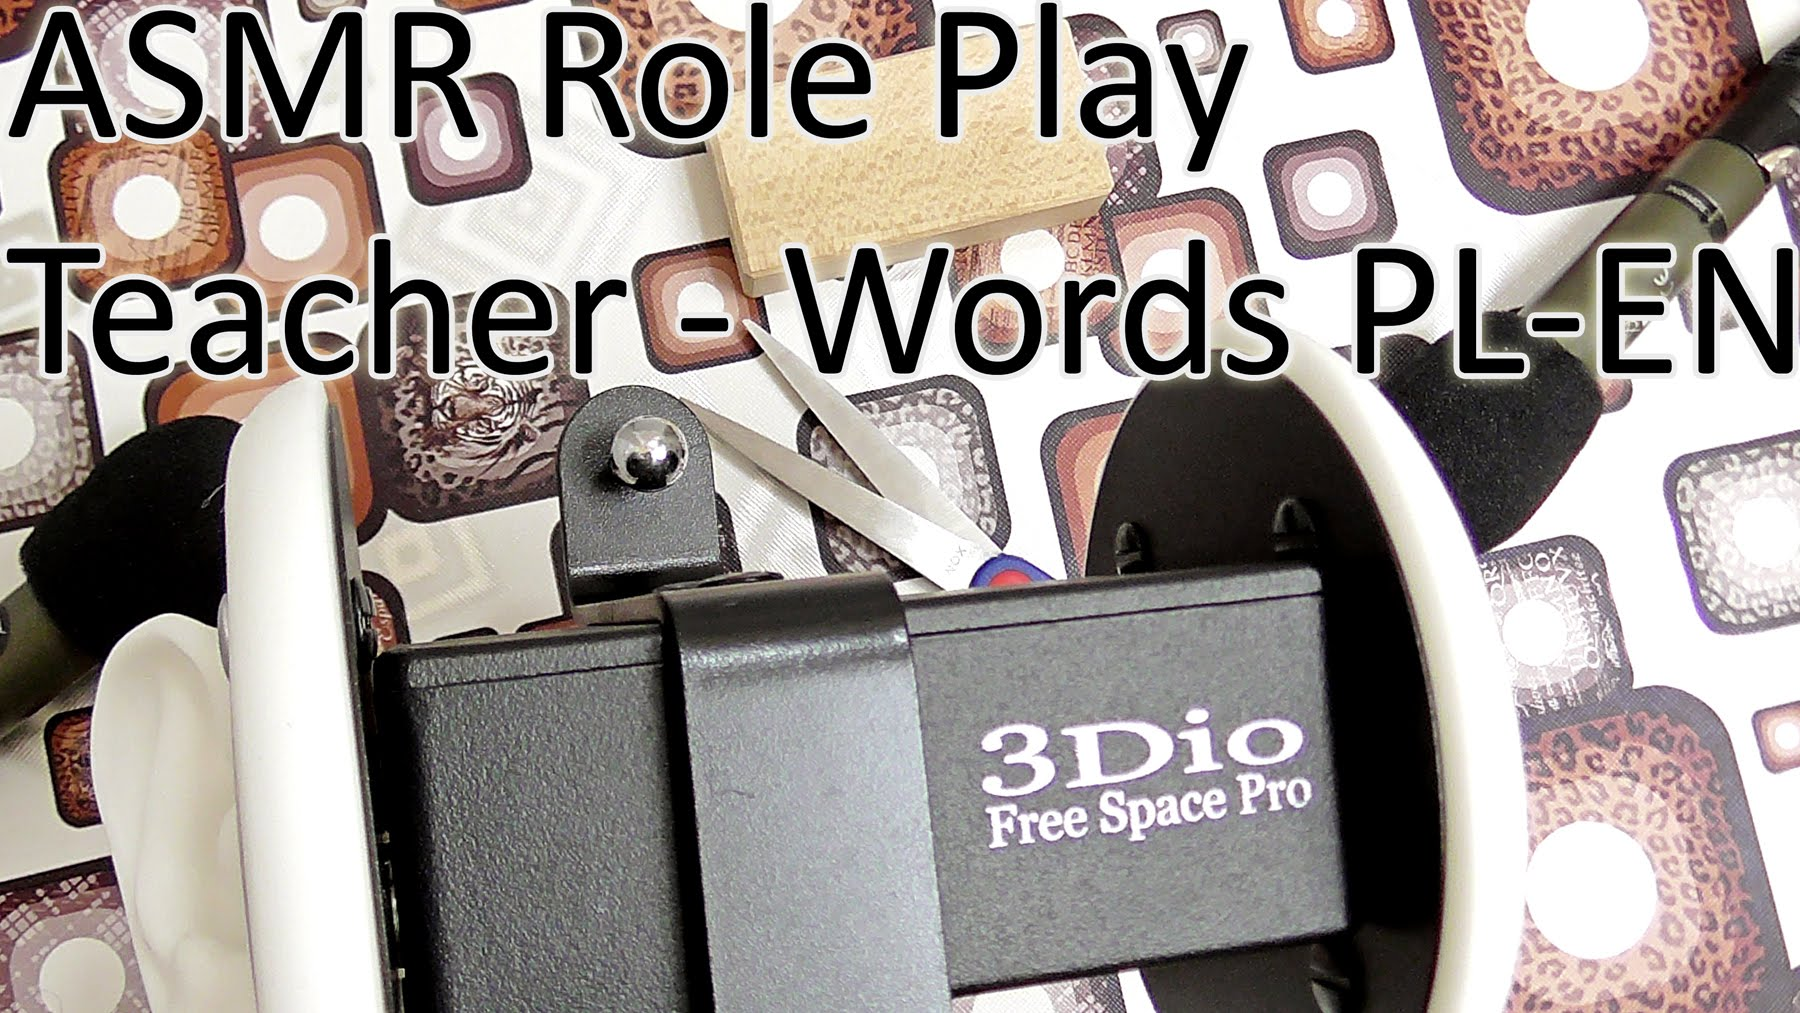 Teacher Role Play Things and Words